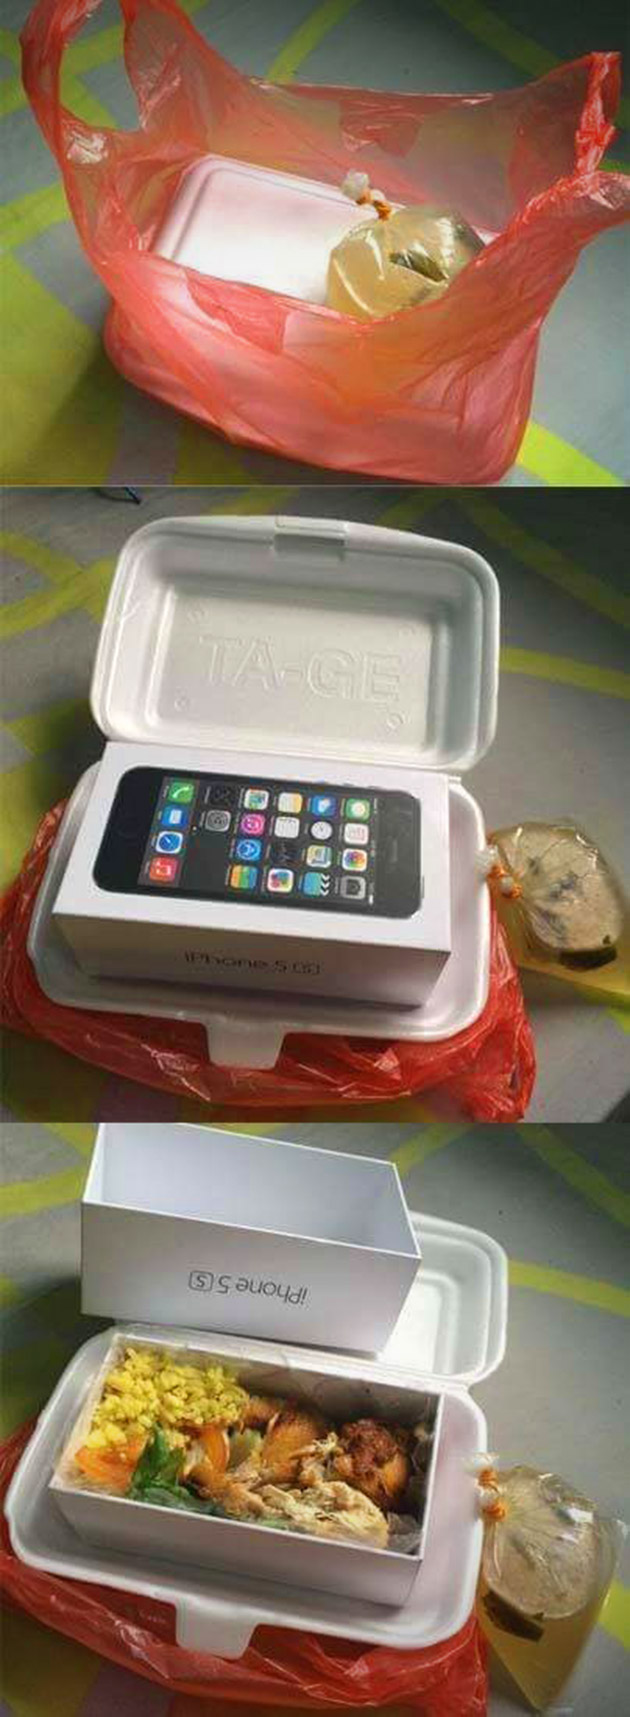 iPhone Prank